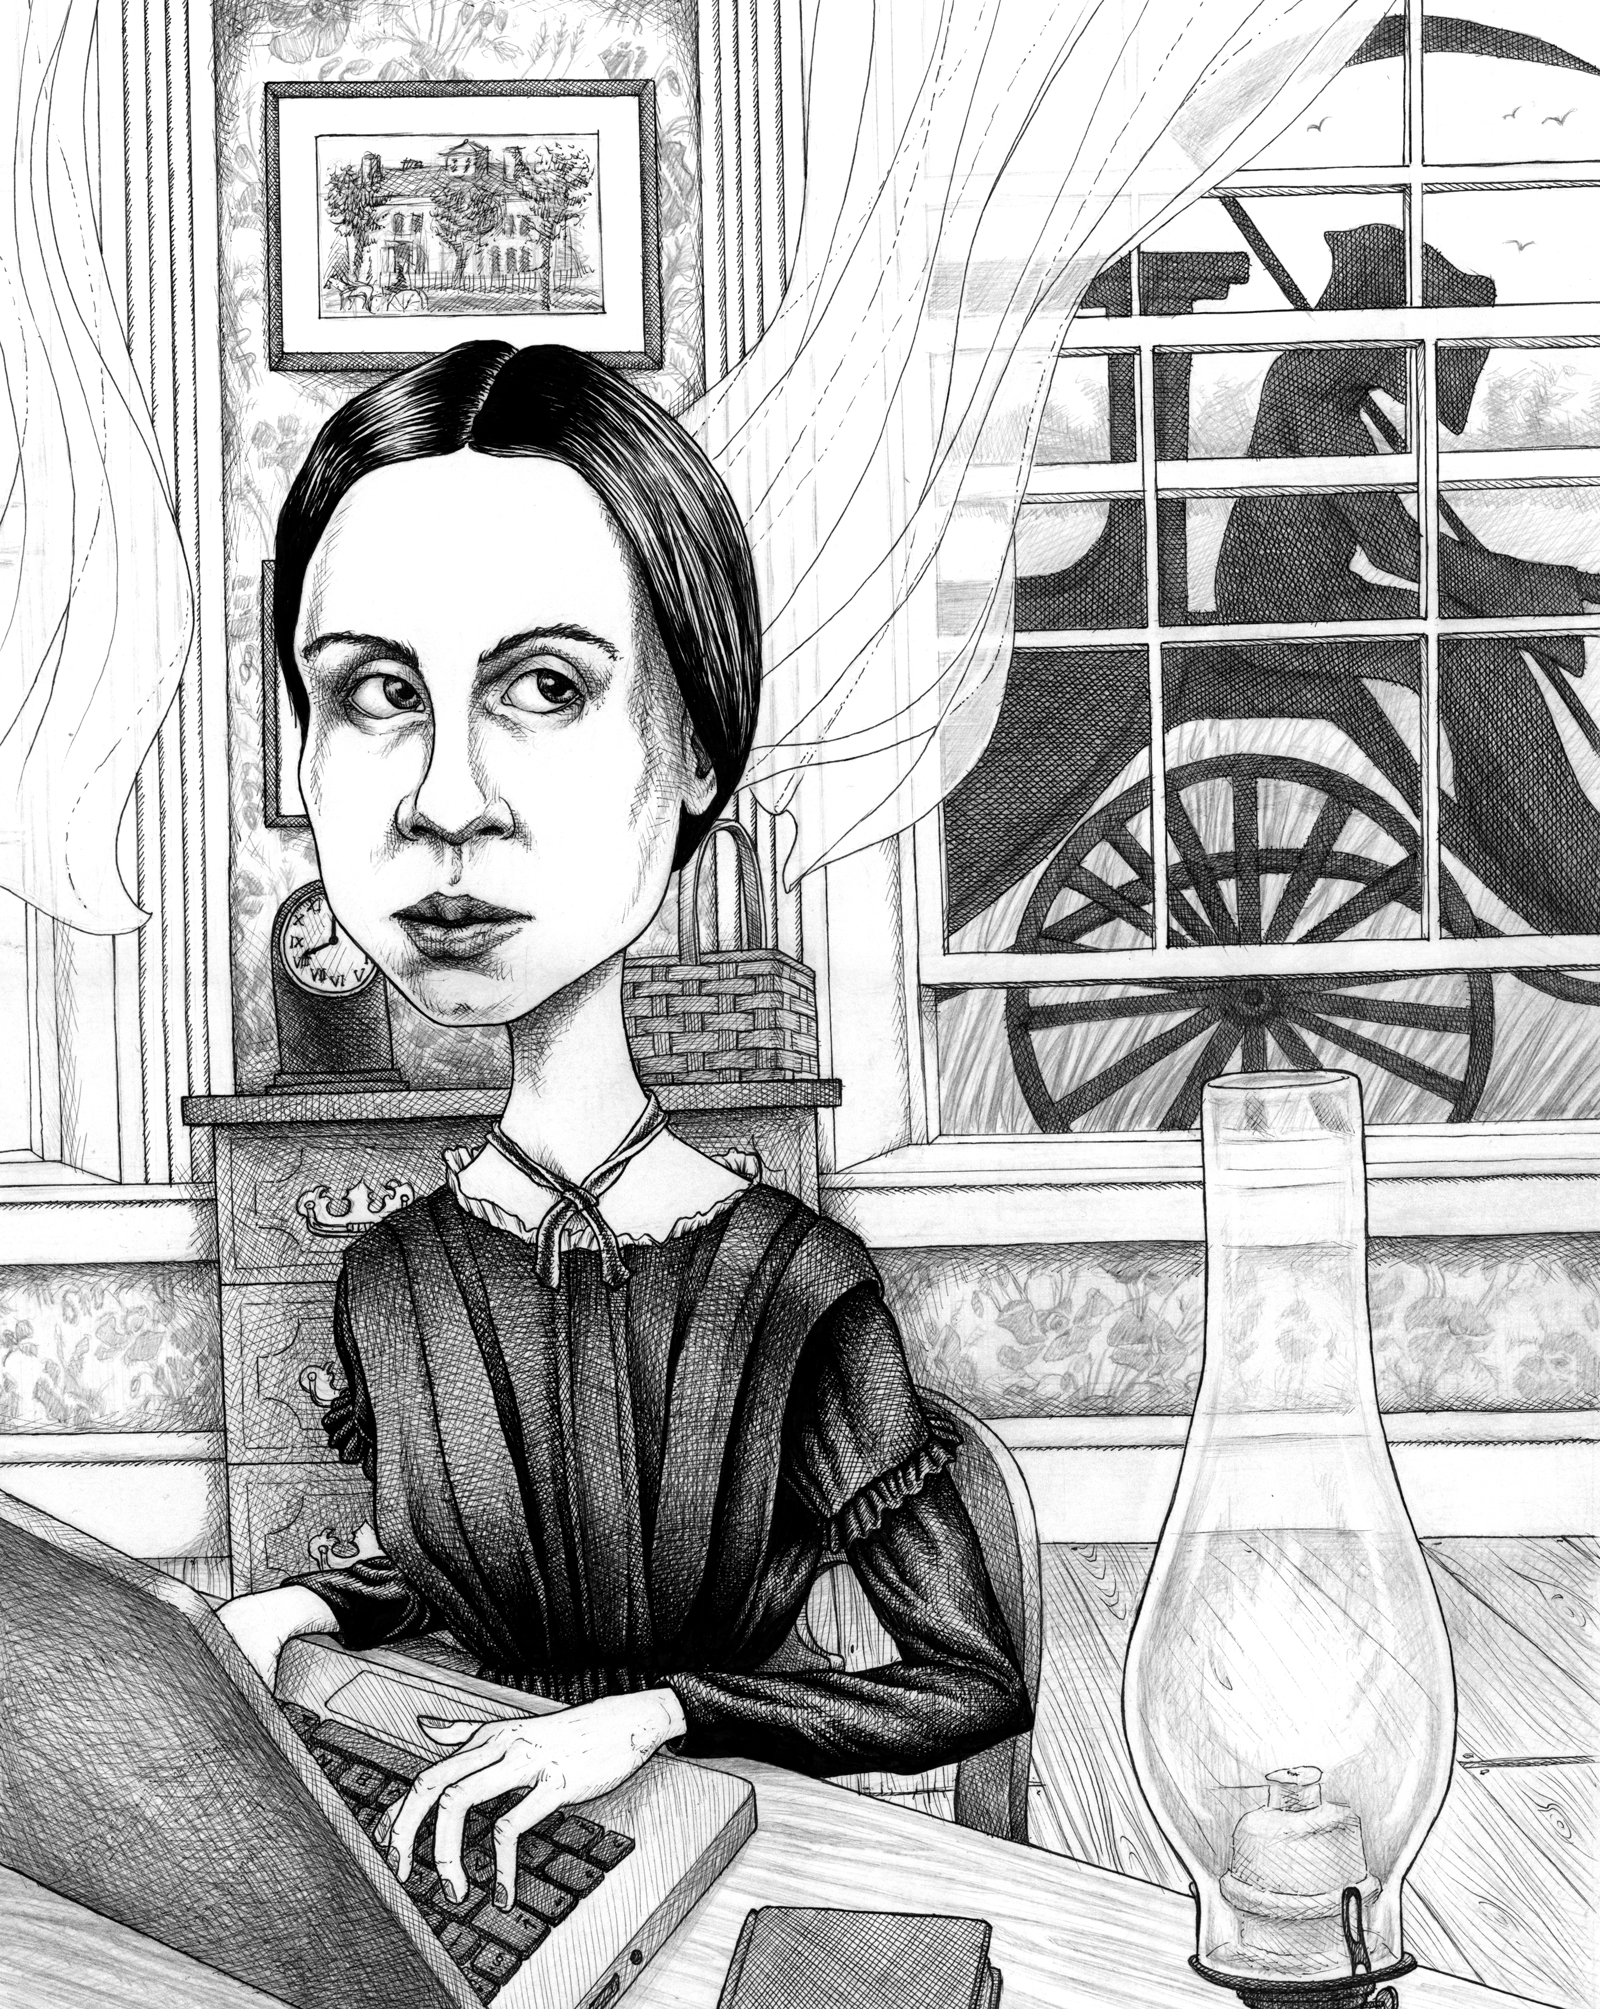 """Emily Dickinson"". Emily Dickinson poster and postcard design for publisher W. W. Norton & Co., 2014. Ink and pencil on Bristol board, A3 (14 x 11 inches). £320"